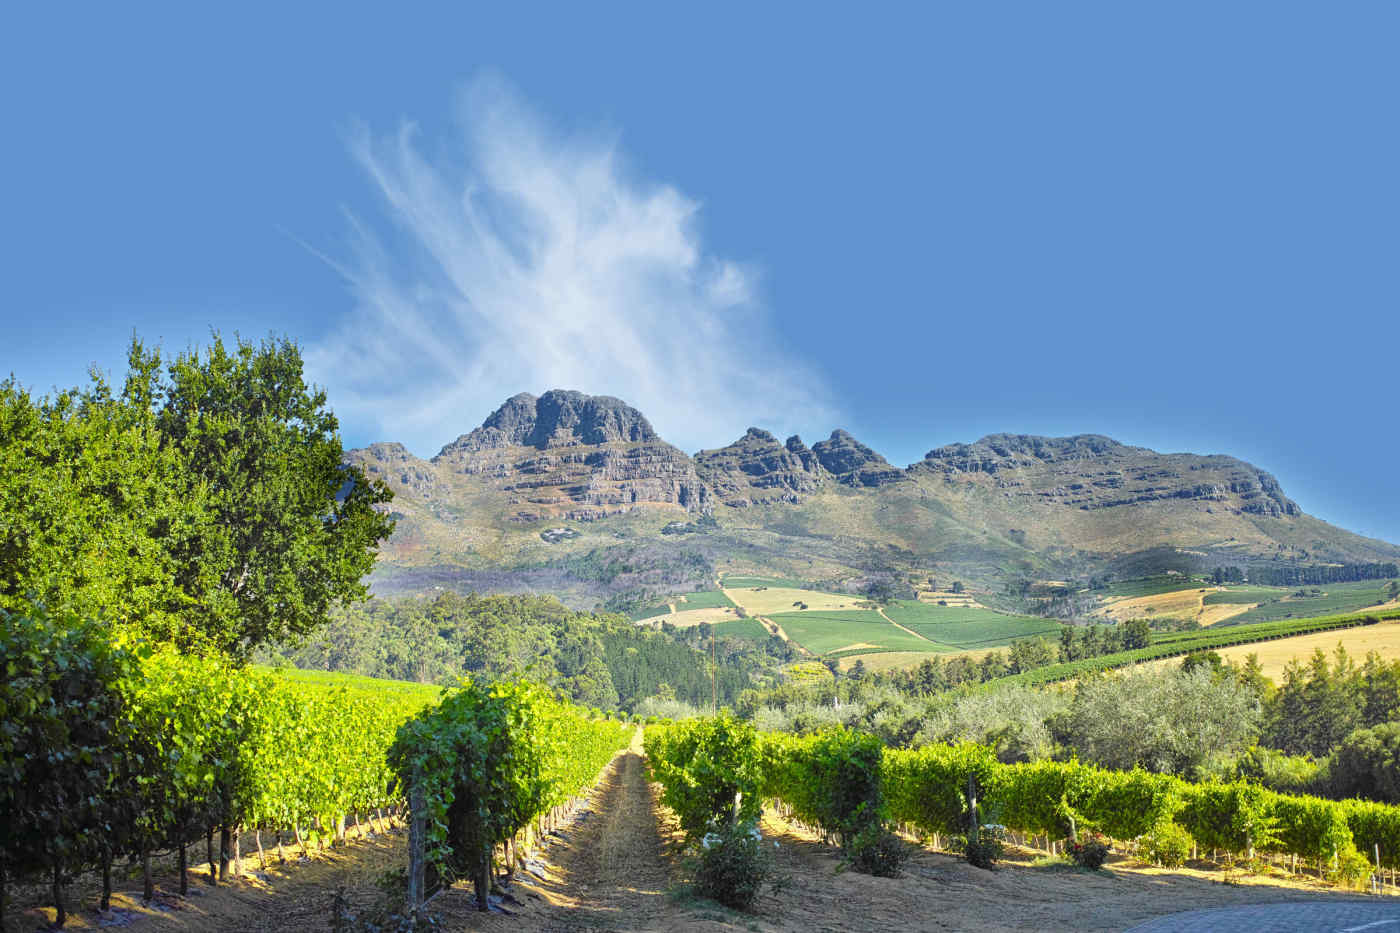 Stellenbosch in the Western Cape